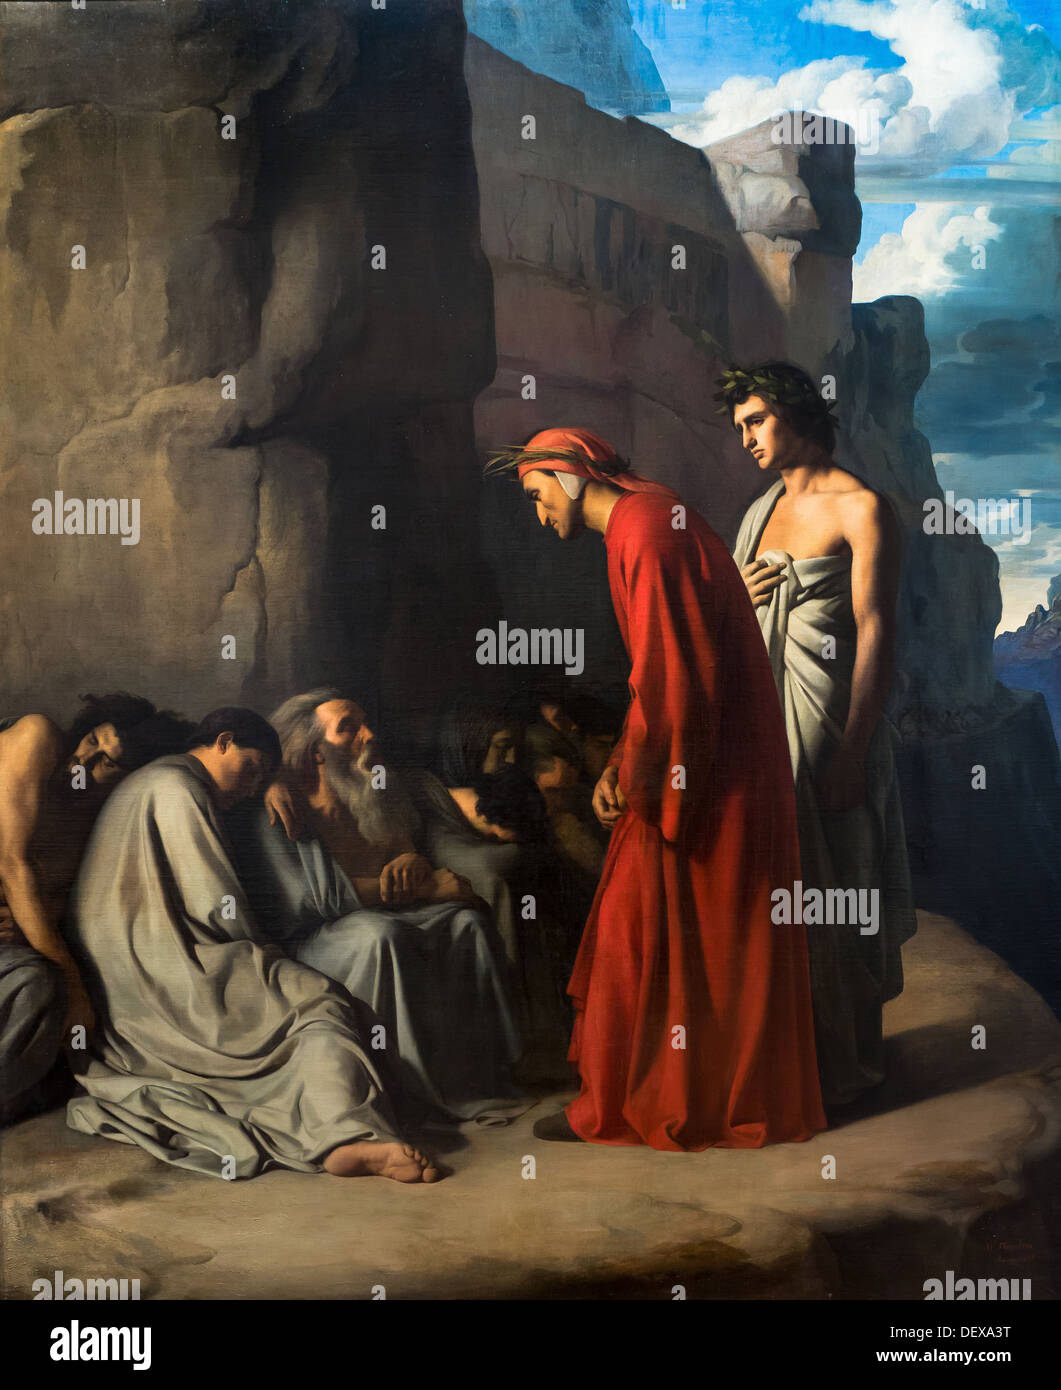 19th century  -  Dante, guided by Virgil, offers consolation to the souls of the envious, 1835 - Hippolyte Flandrin - Stock Image